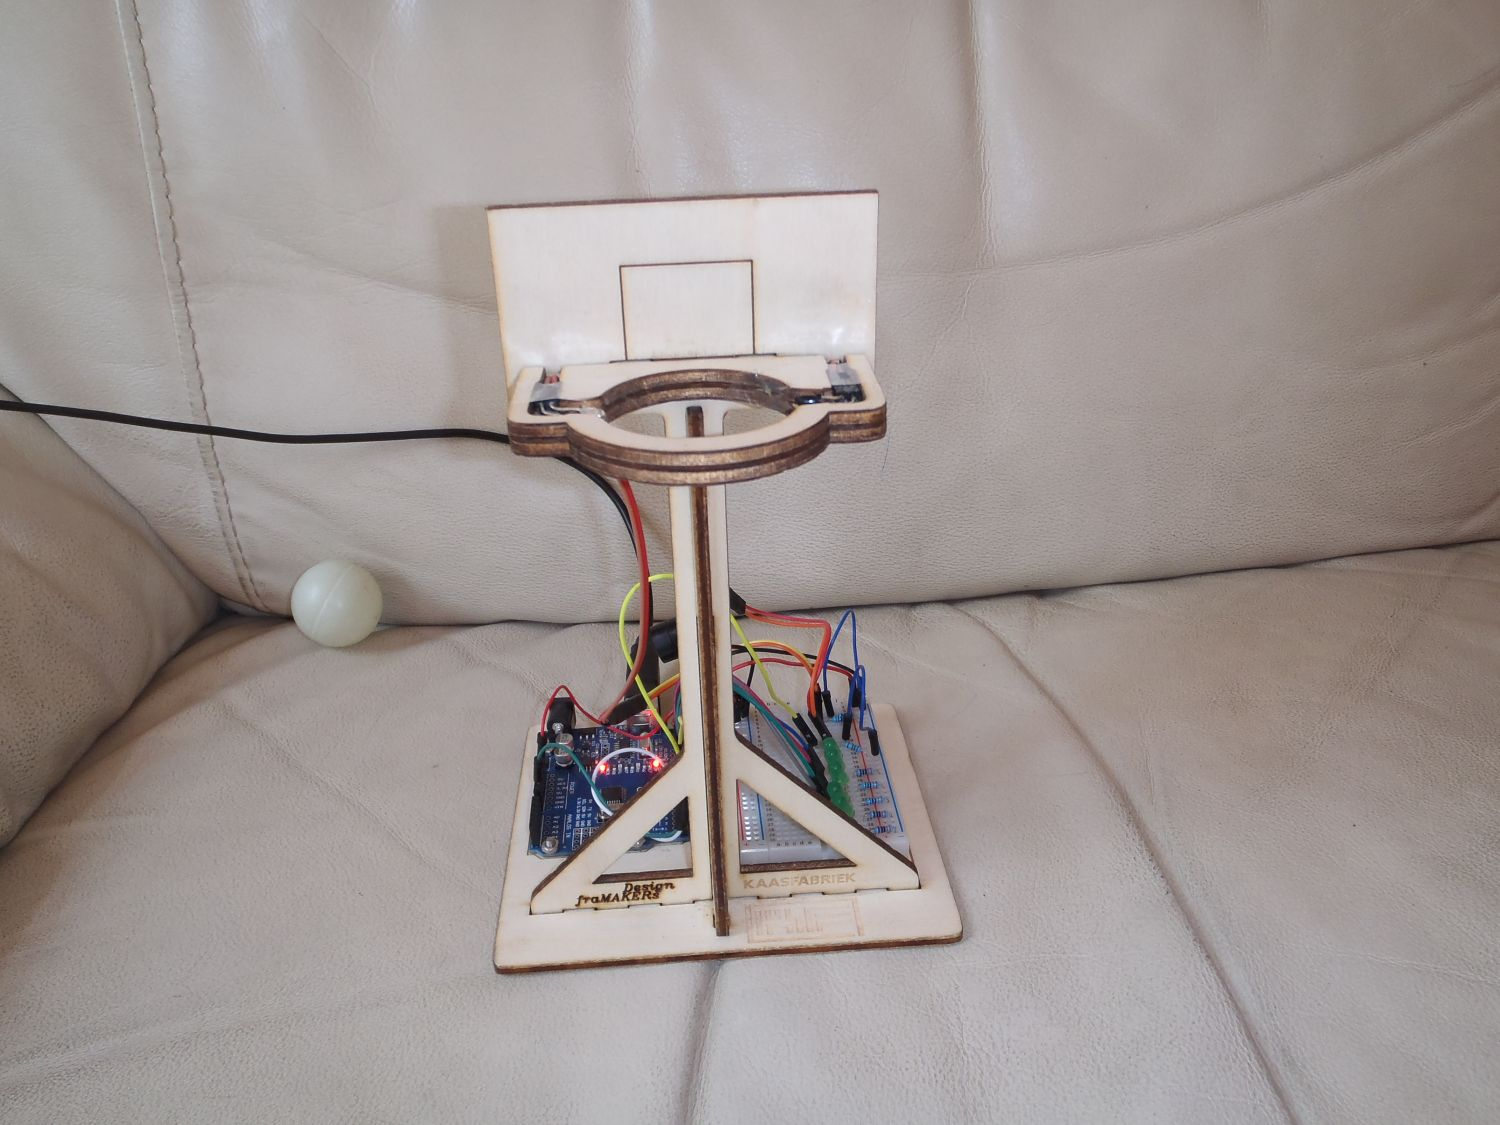 Arduino basketbalspel